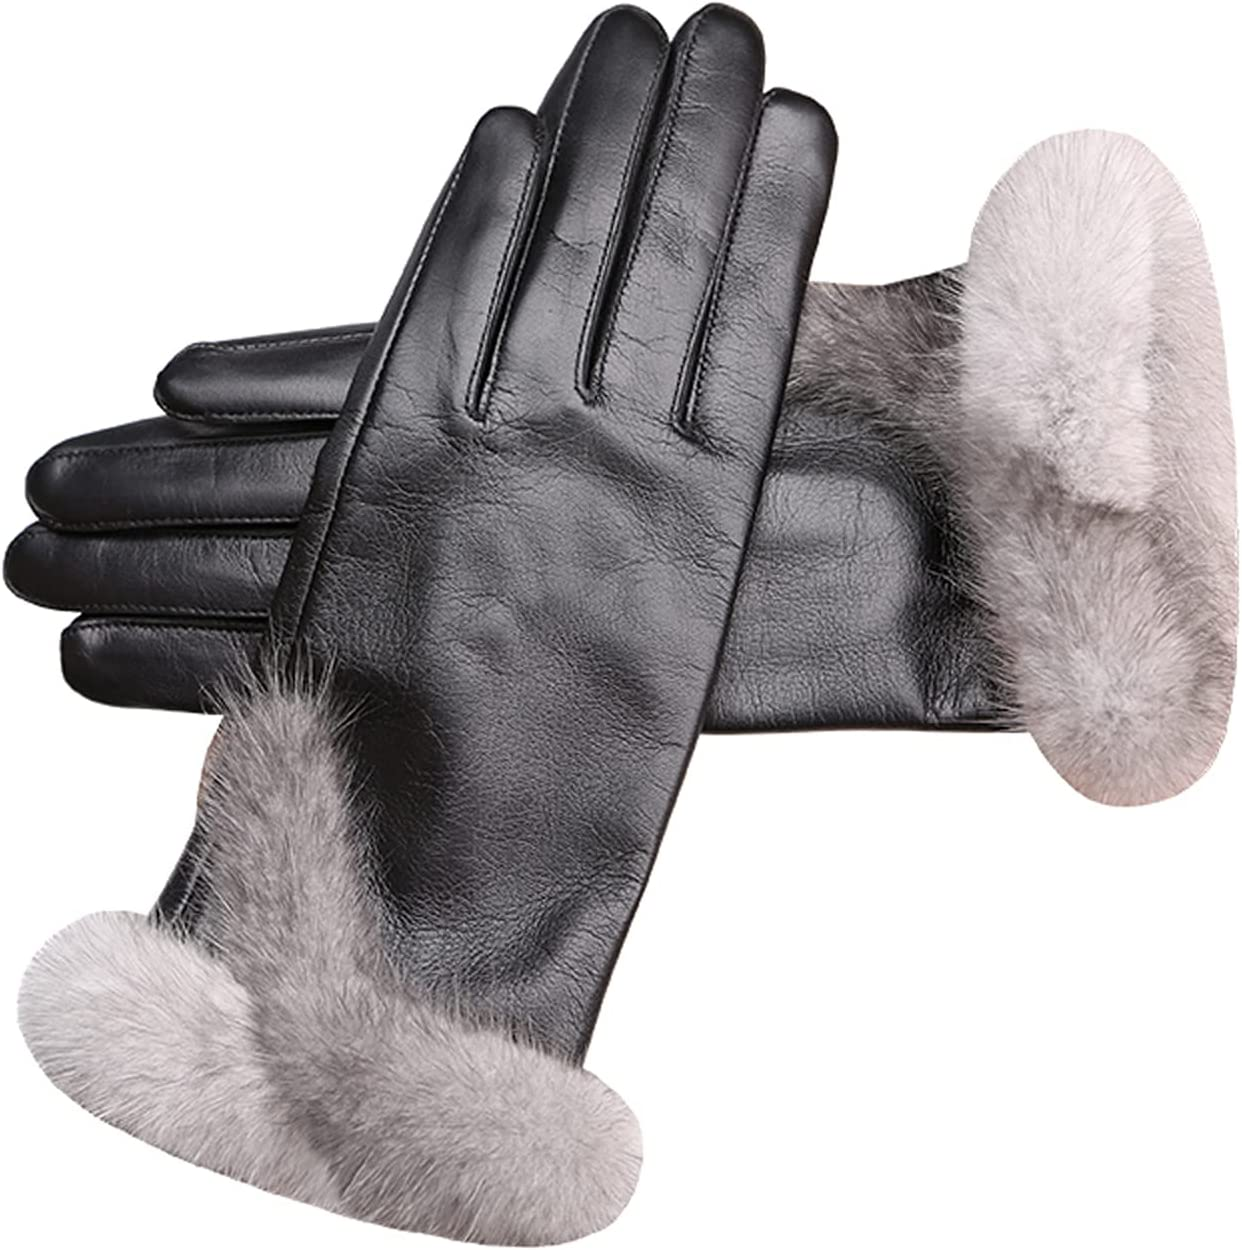 Jjshueryg Mink Wool Lambskin Gloves, Ladies Winter Warm, Cycling and Windproof Leather Gloves, Driving Fashion Gloves